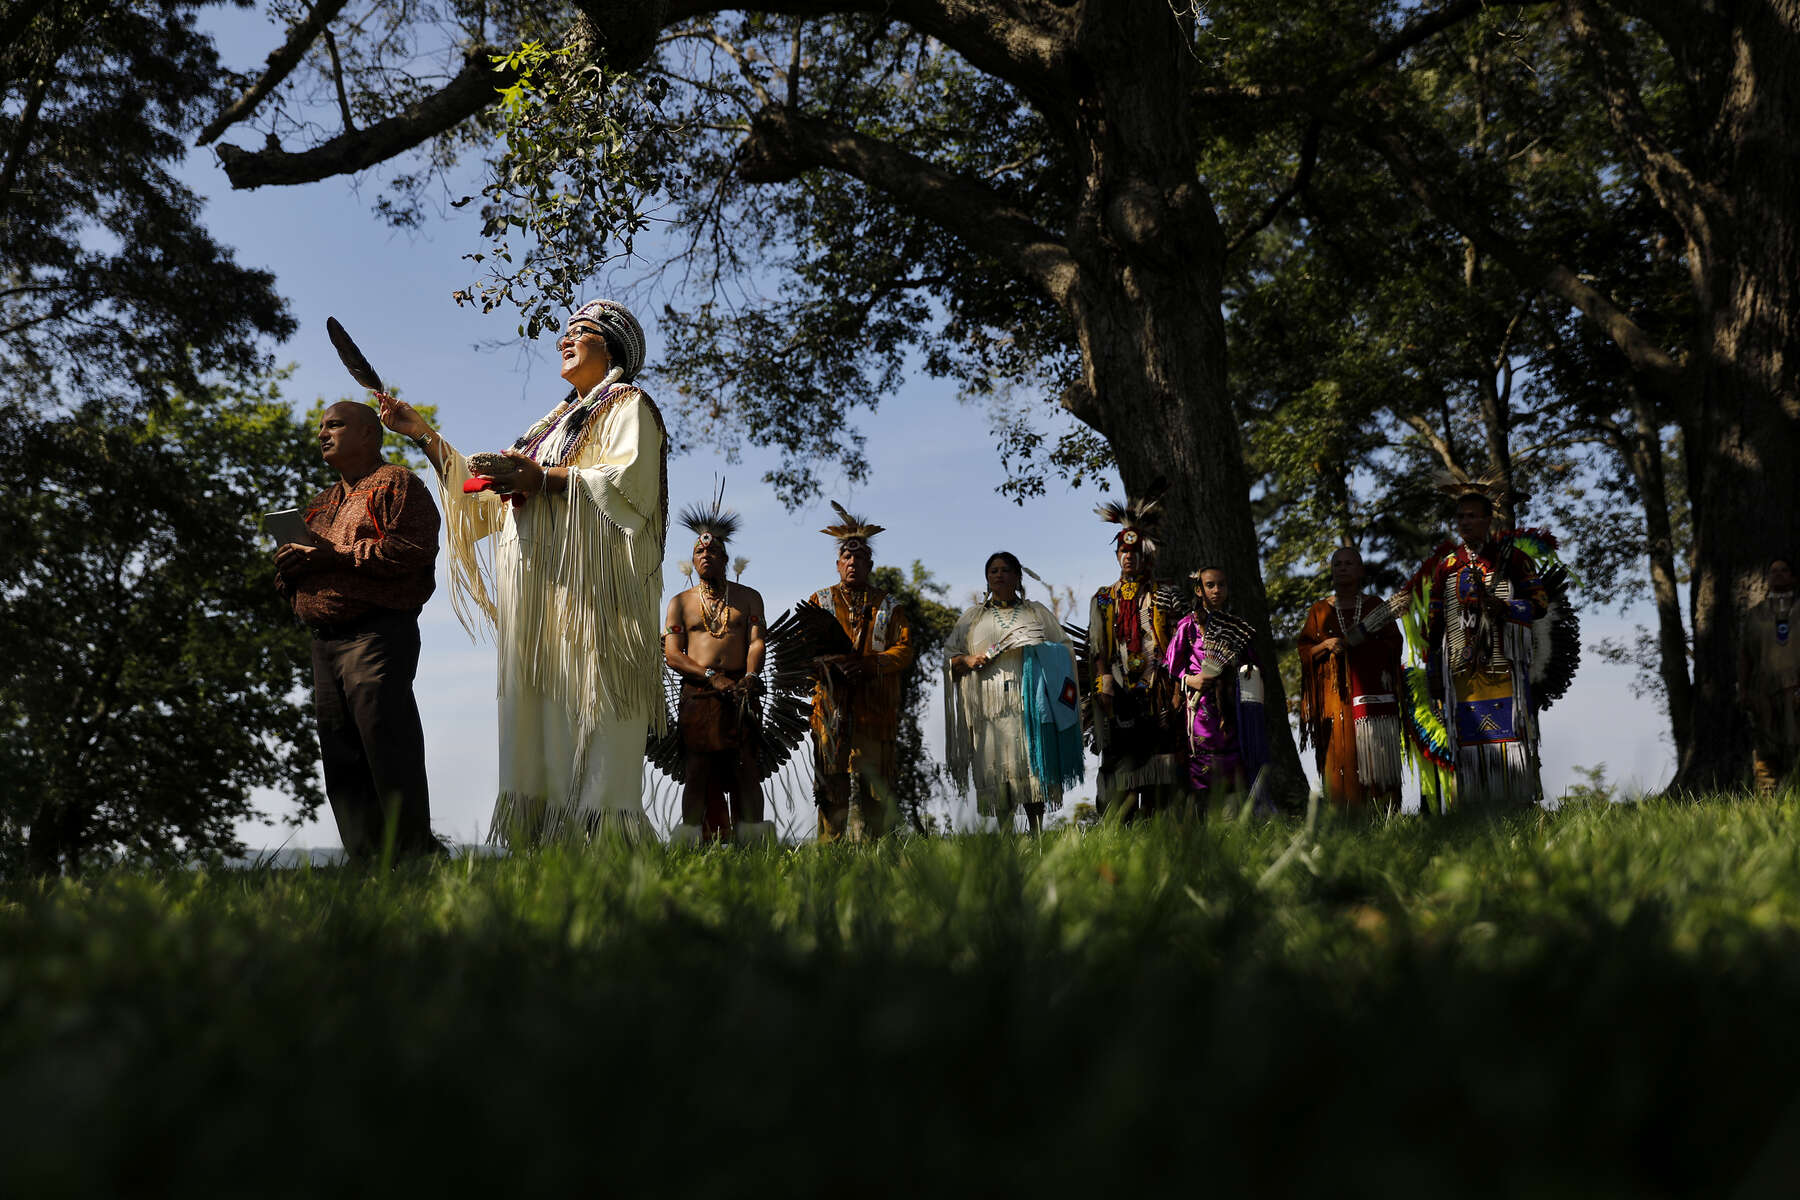 """Chief G. Anne Richardson of the Rappahannock Tribe performs a ceremonial blessing before the start of Wednesday's event celebrating seven Virginia Tribes who recently received federal recognition October 3, 2018. """"This is liberty for us. This is justice for us,"""" Richardson said. """"And we're finally seeing the promises that are inherent in our constitution that we've been left out of all these years."""""""